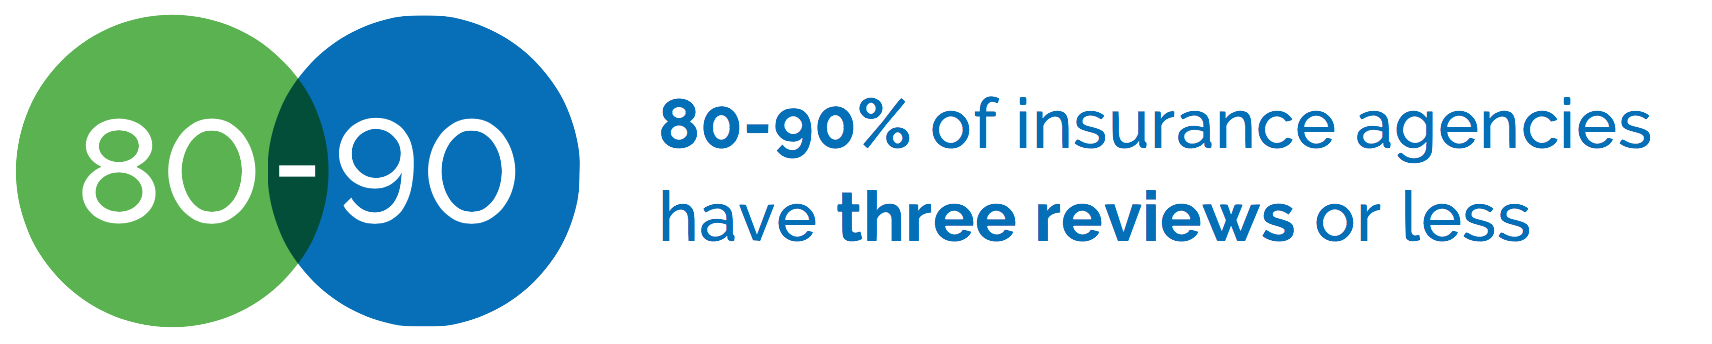 percentage of insurance agents that have three reviews or less